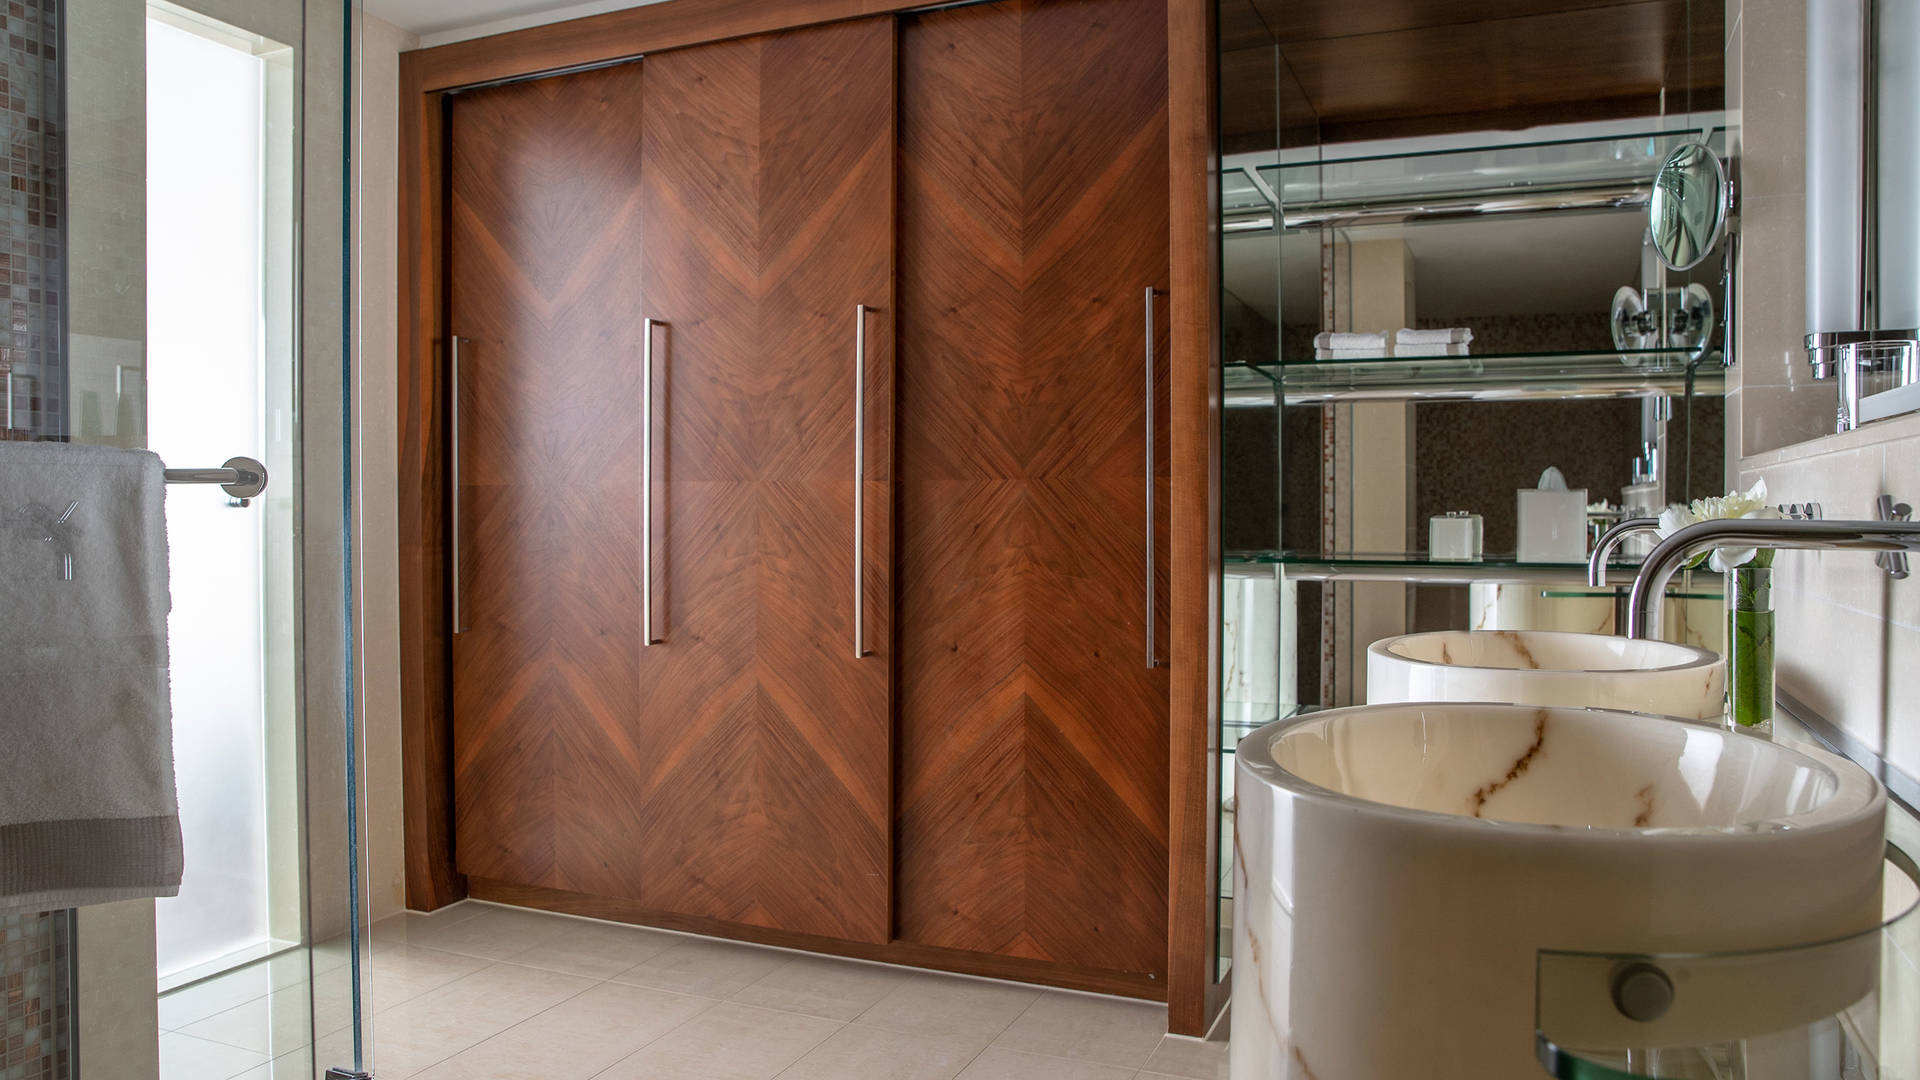 Jumeirah Frankfurt Panoramic Suite bathroom 4_16-9